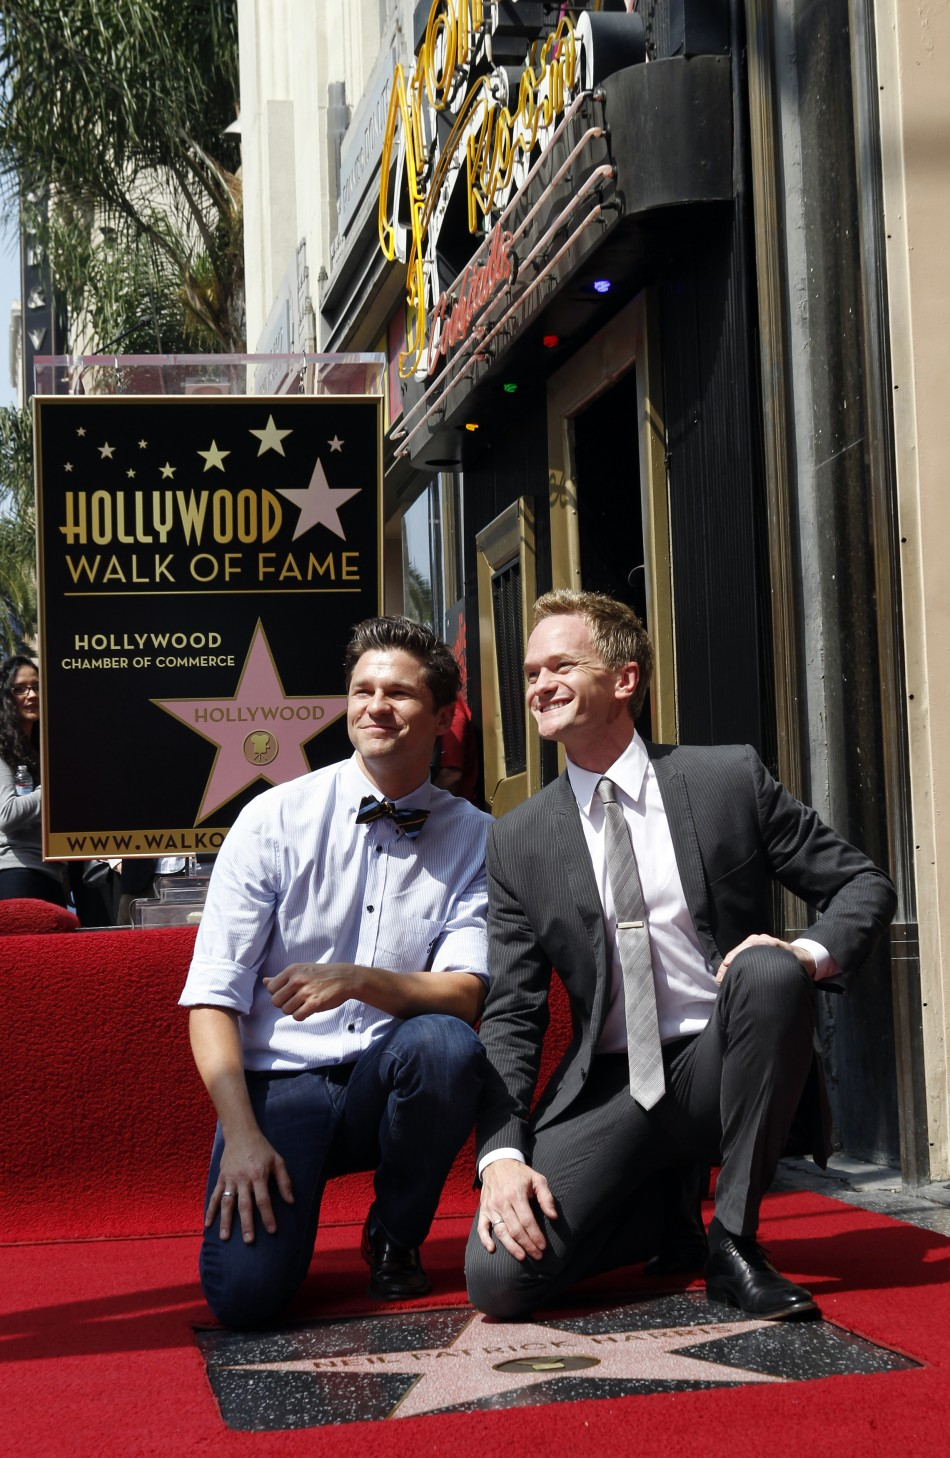 Actor Neil Patrick Harris (R) and his partner David Burtka pose together during ceremonies honoring Harris with a star on the Hollywood Walk of Fame in Hollywood September 15, 2011. The star was placed near the Frolic Room cocktail lounge sign background.